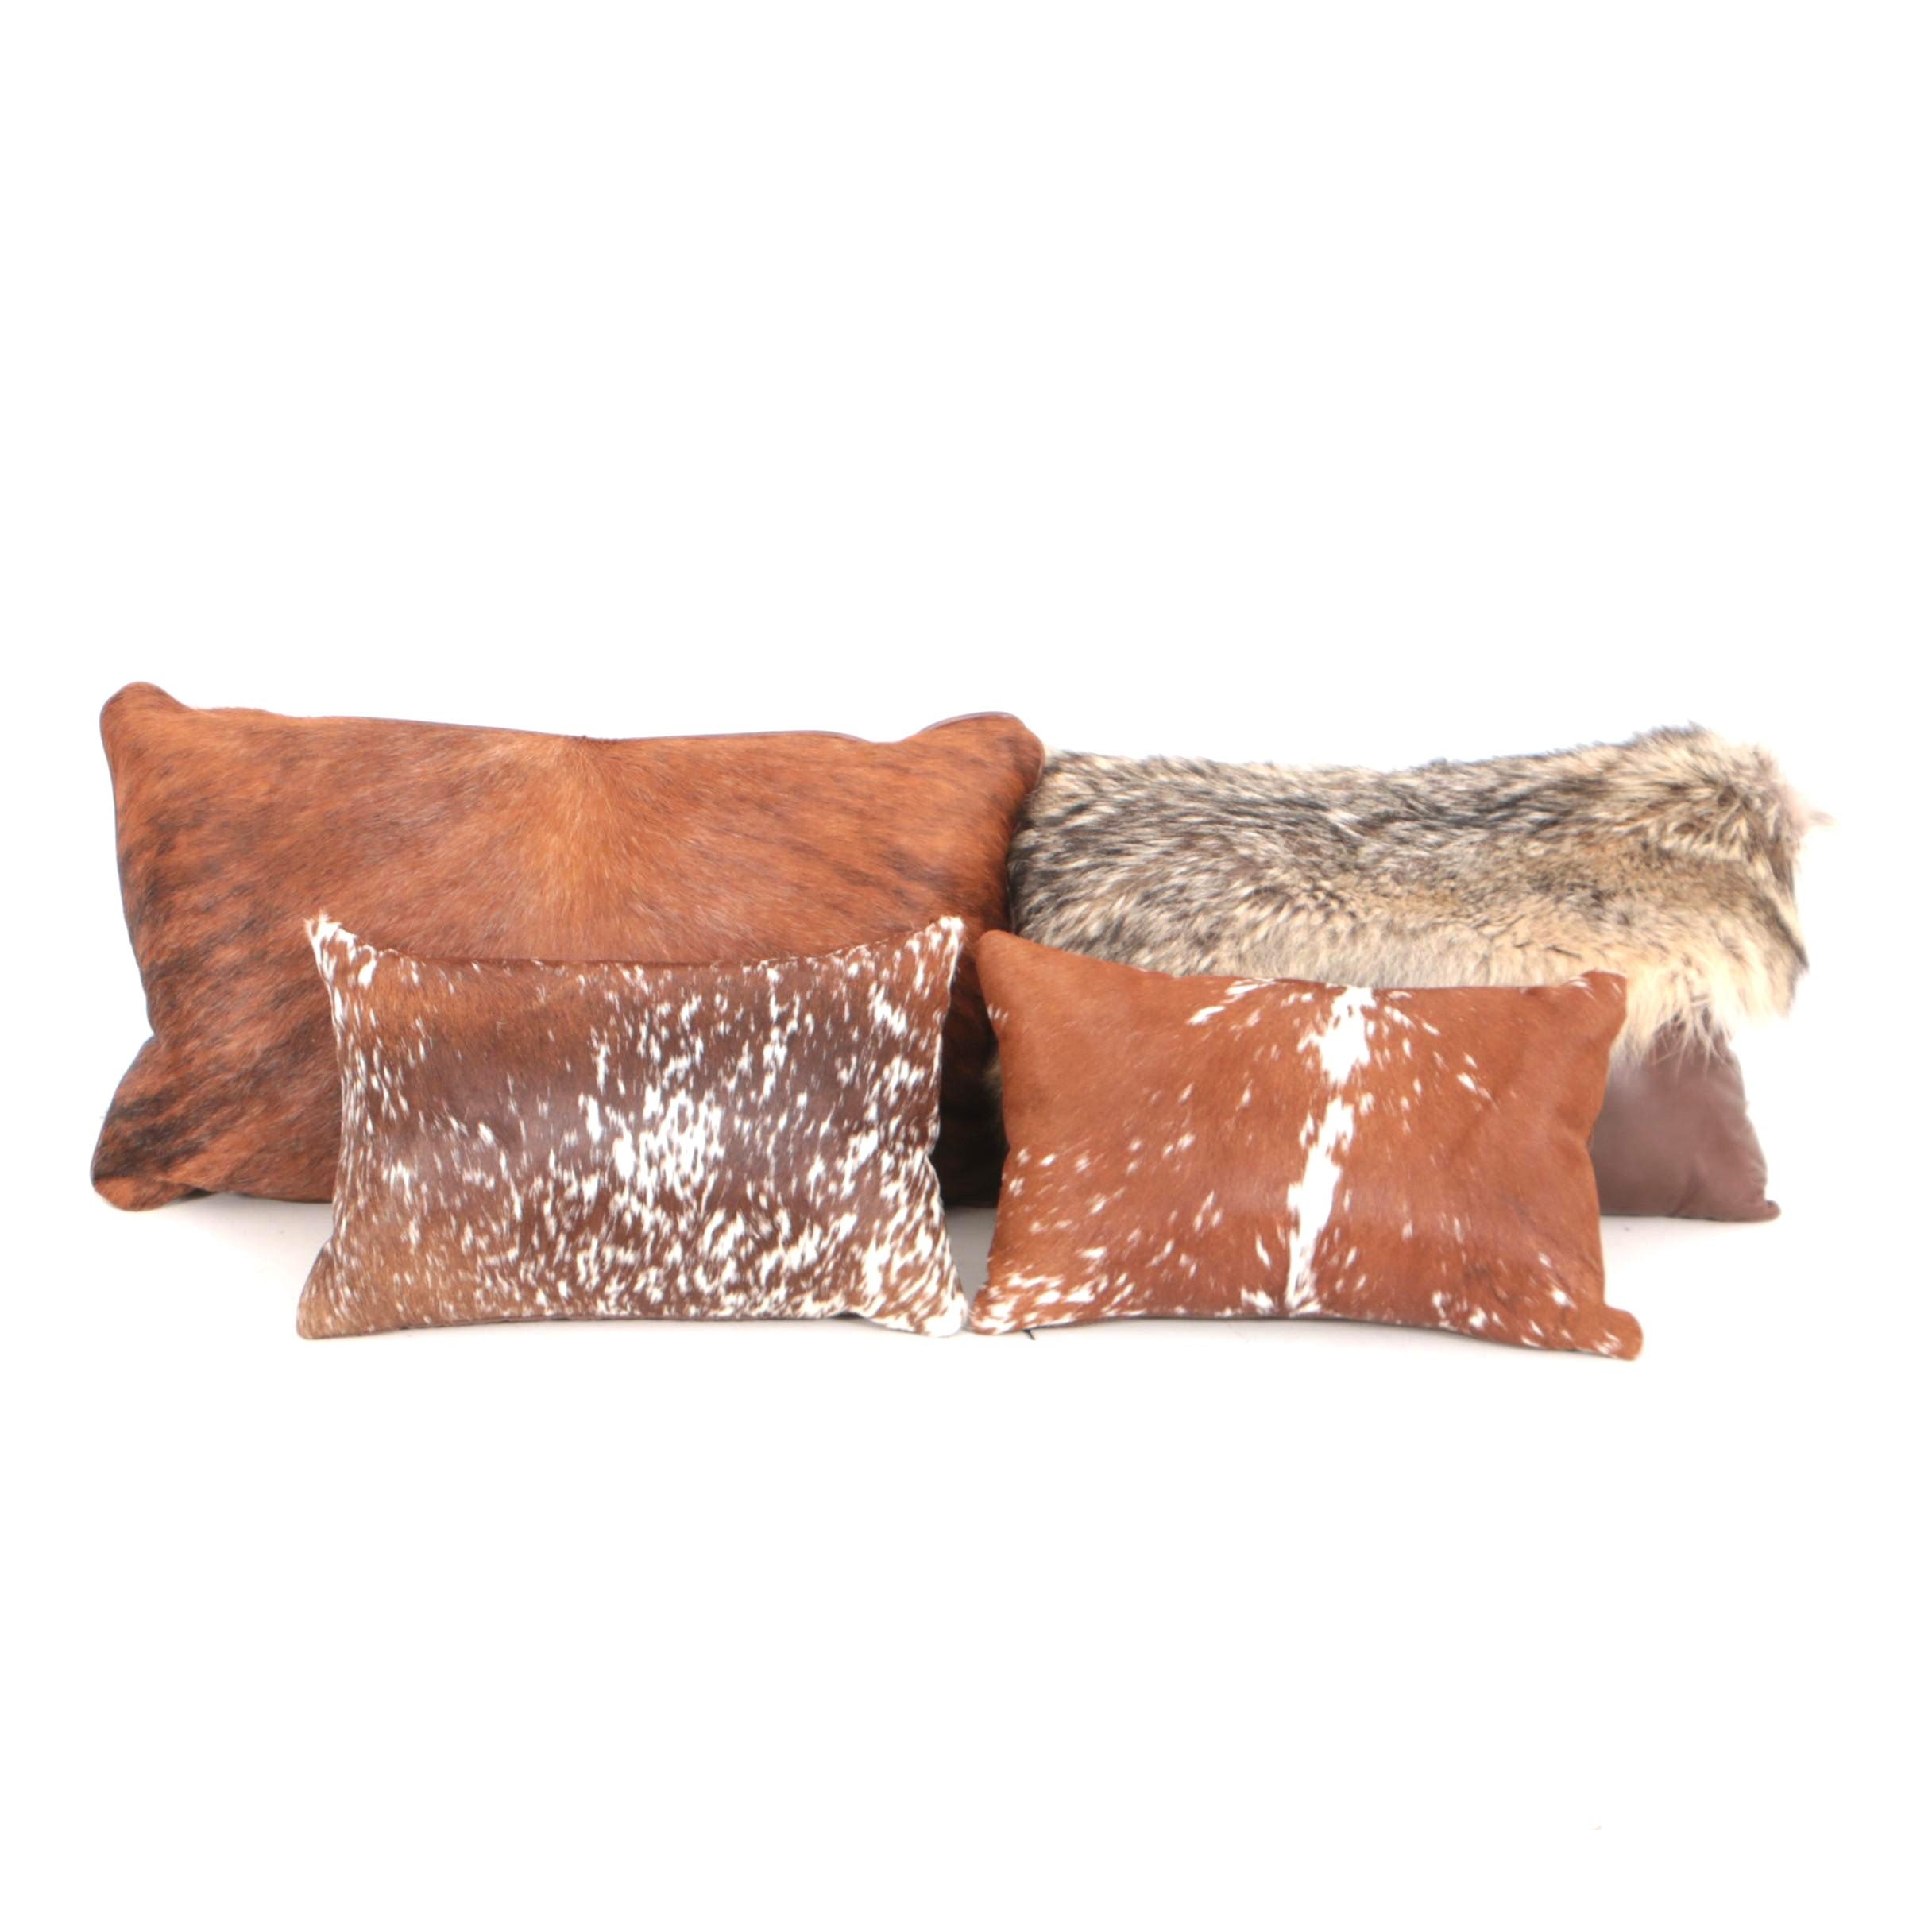 Four Calf Hair Leather and Coyote Fur Throw Pillows